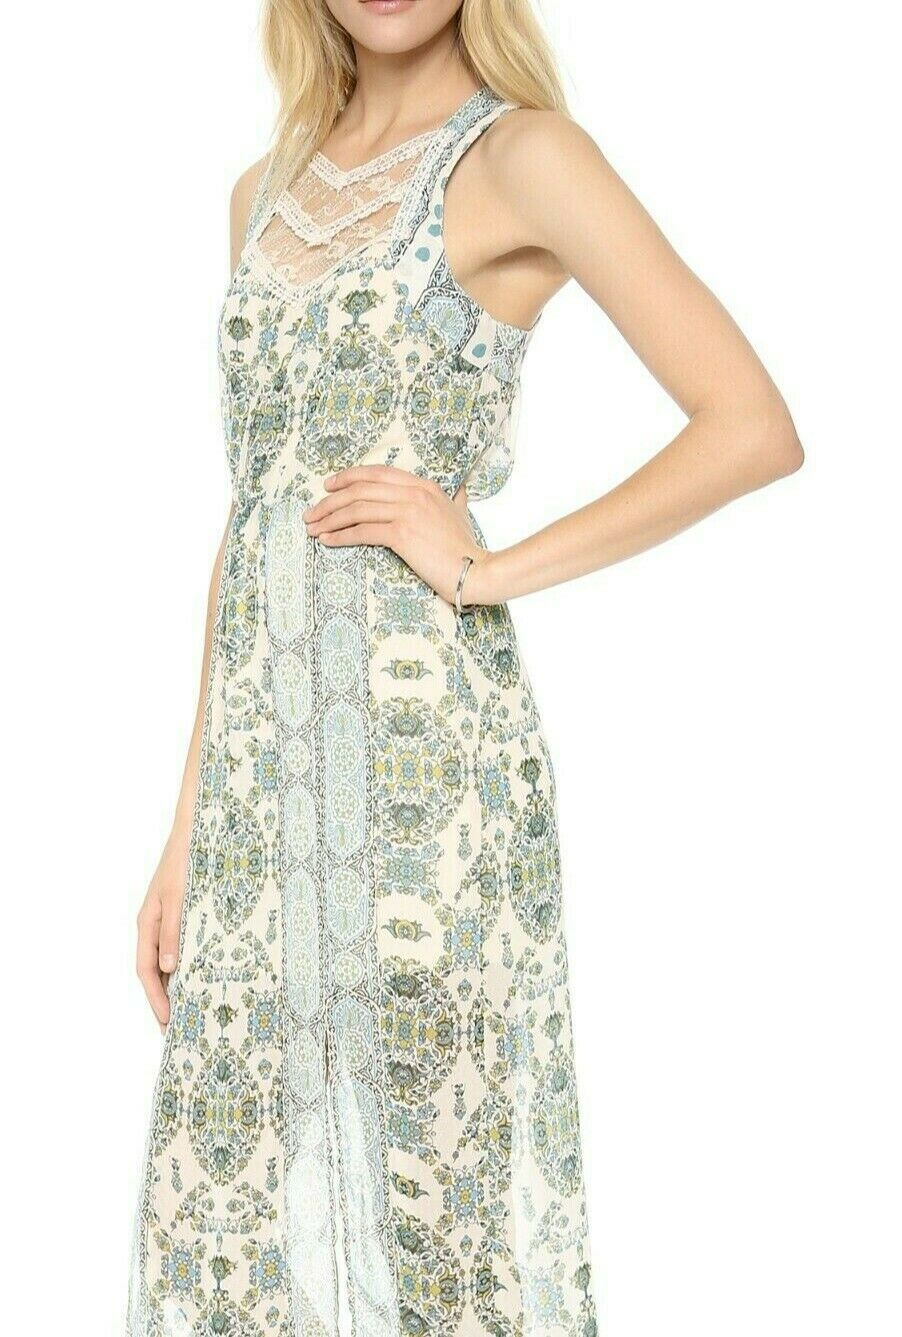 Free People Moroccan Dress